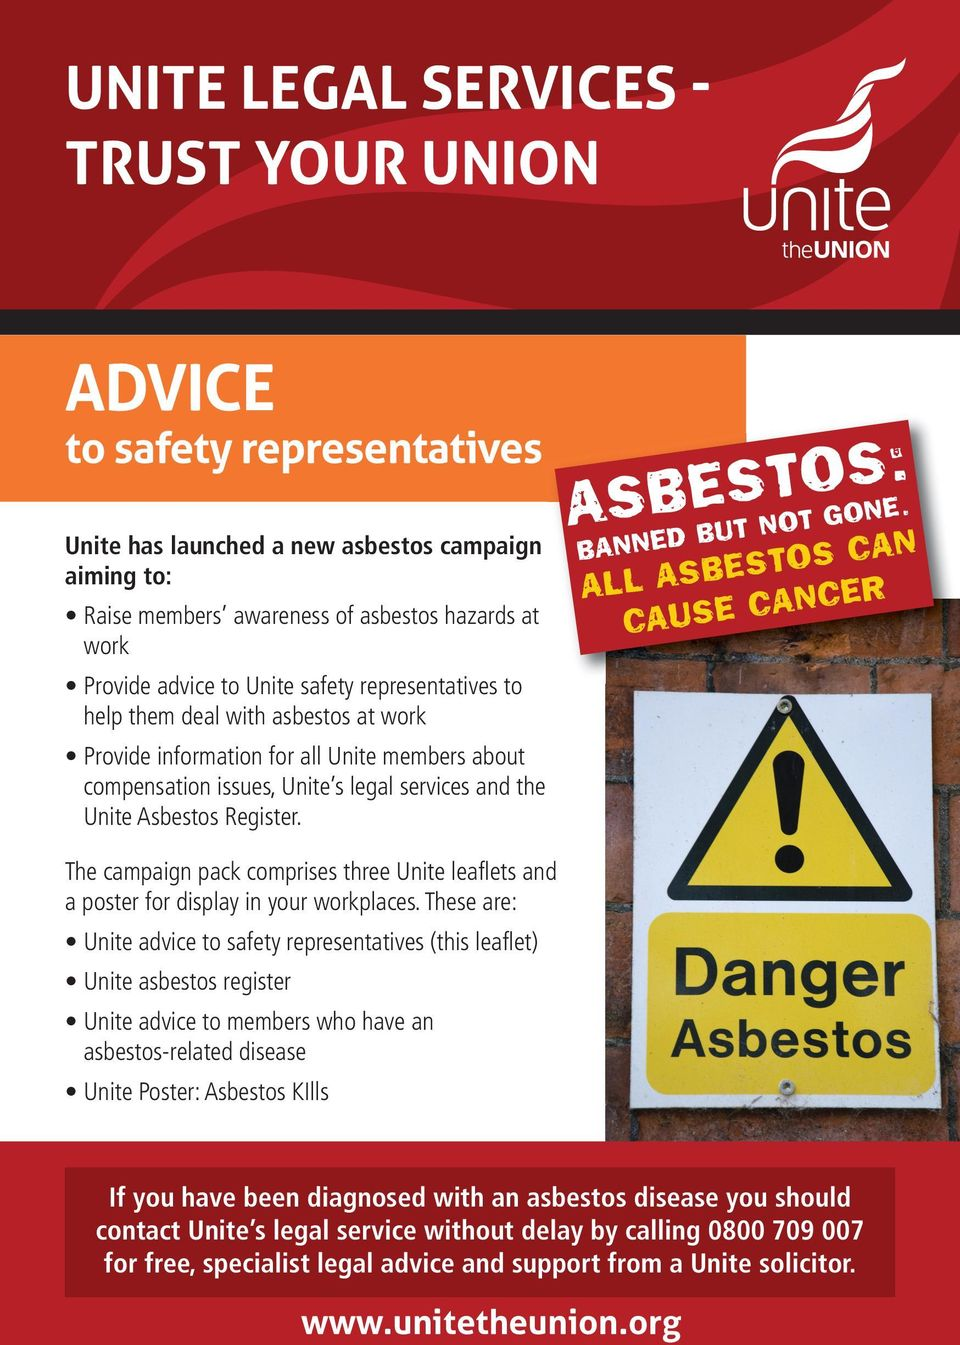 ASBESTOS: BANNED BUT NOT GONE. ALL ASBESTOS CAN CAUSE CANCER The campaign pack comprises three Unite leaflets and a poster for display in your workplaces.